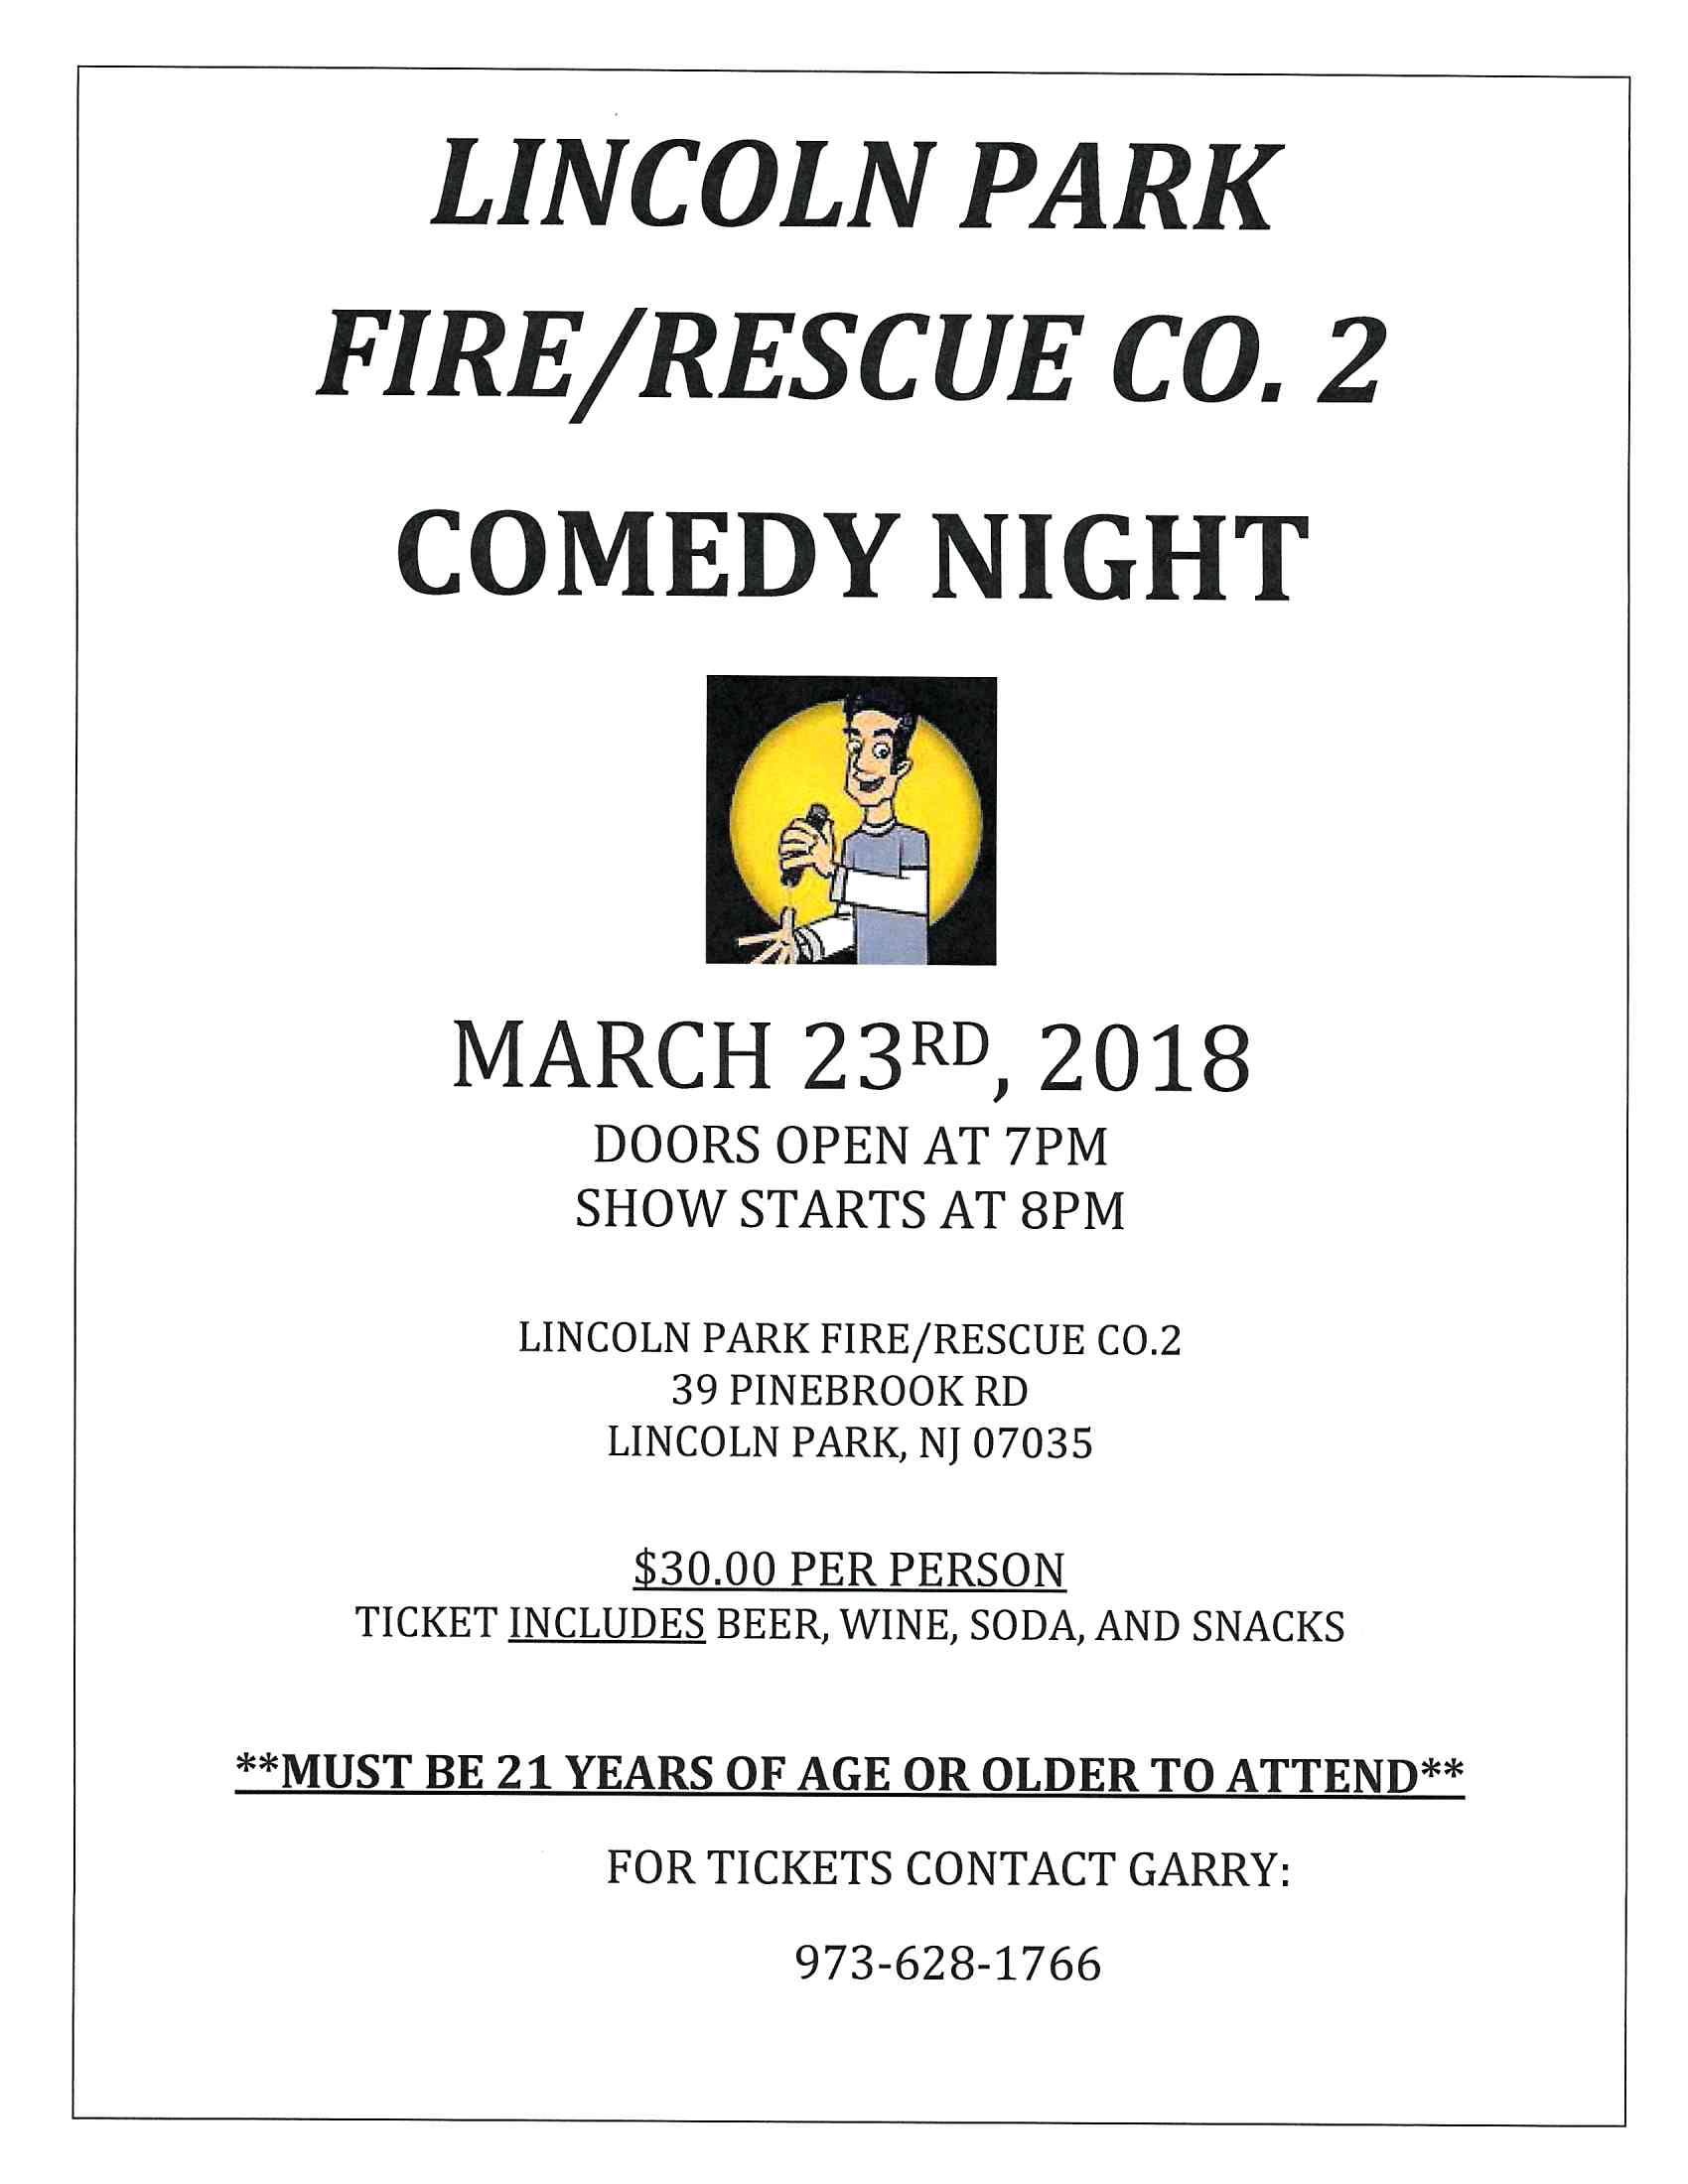 FIRE Comedy Night 3-23-18